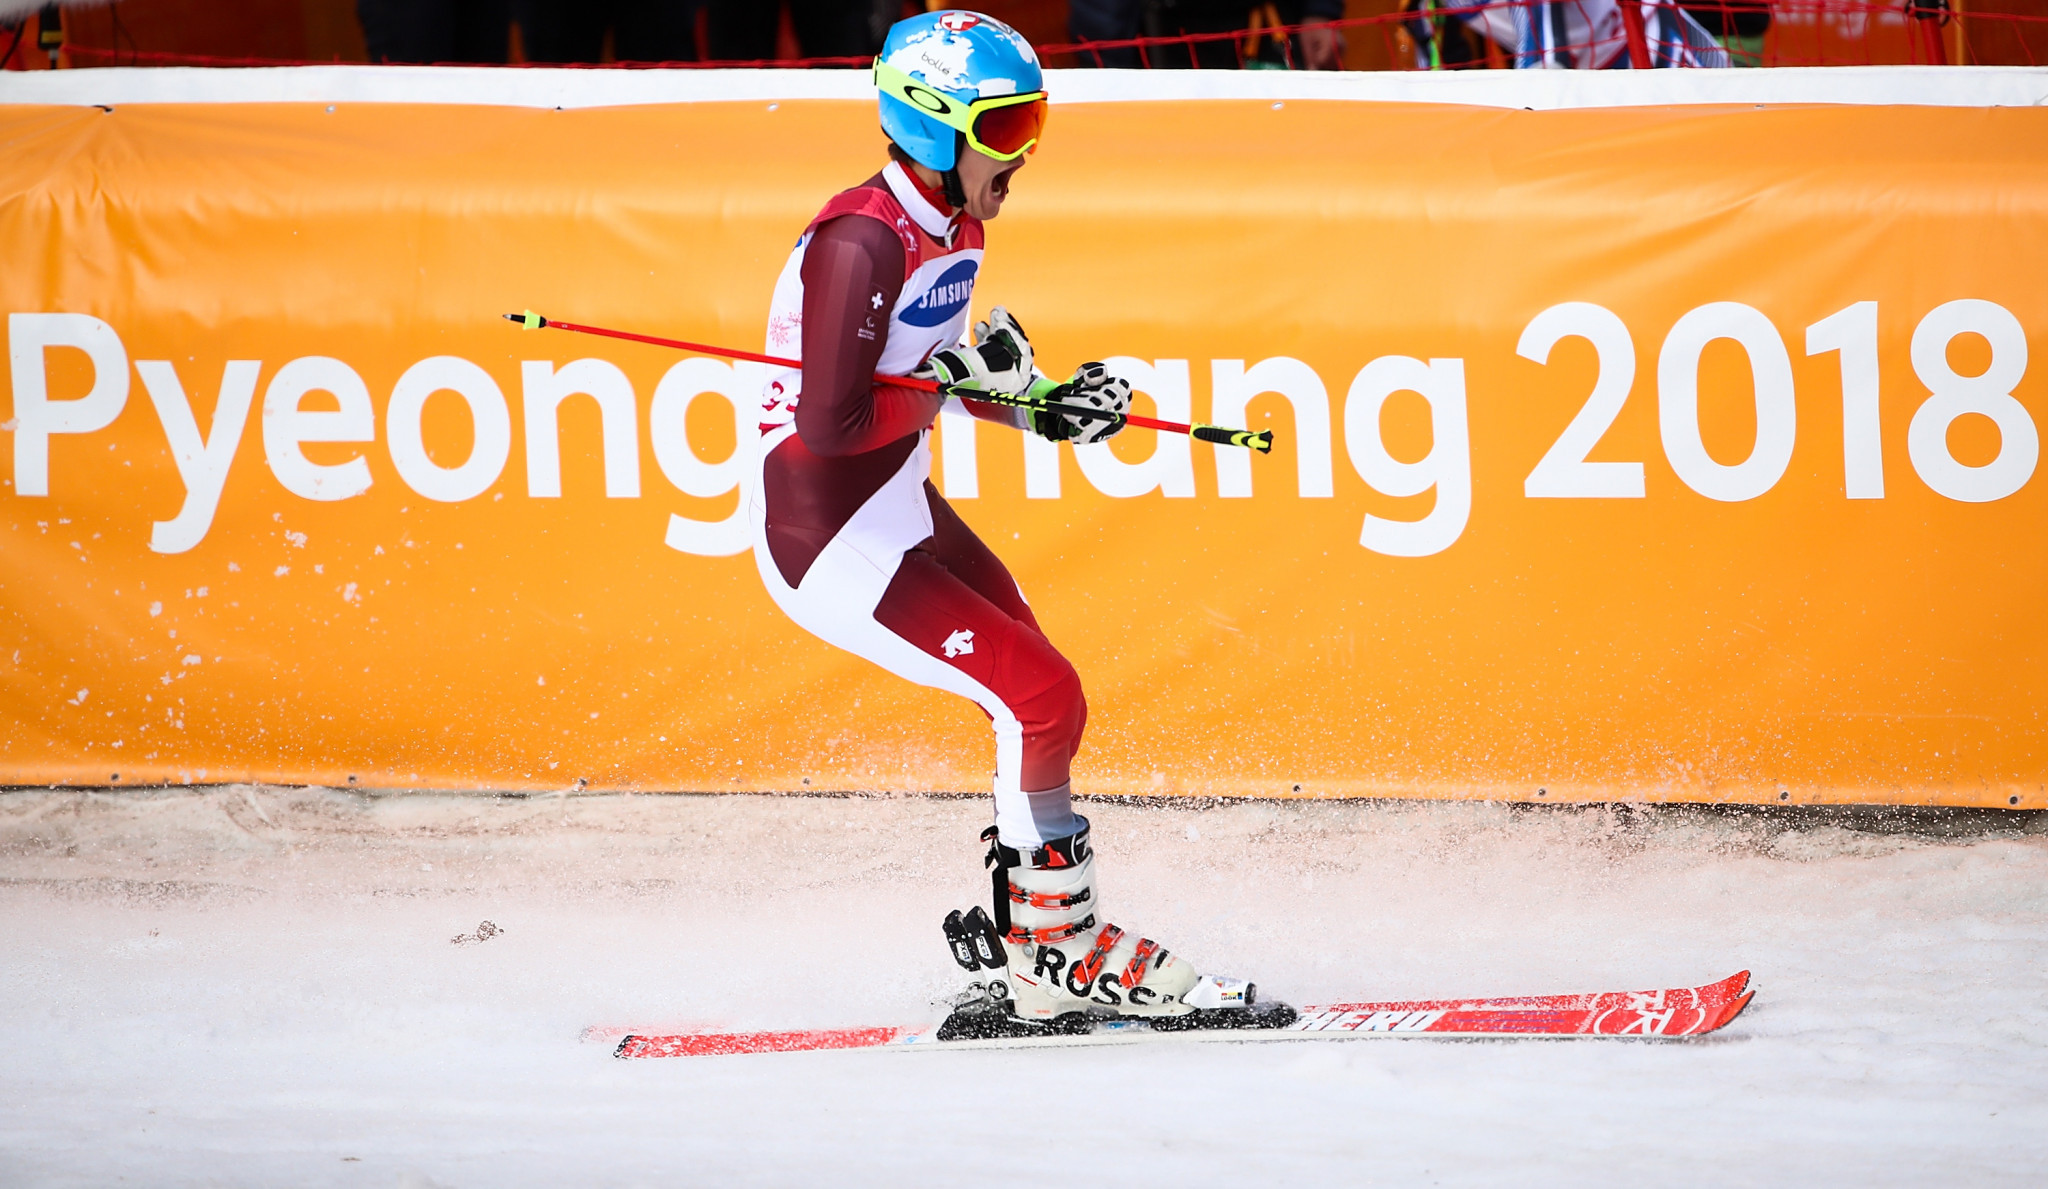 Gmur adds another home gold for Switzerland as World Para Alpine Skiing World Cup concludes in Veysonnaz